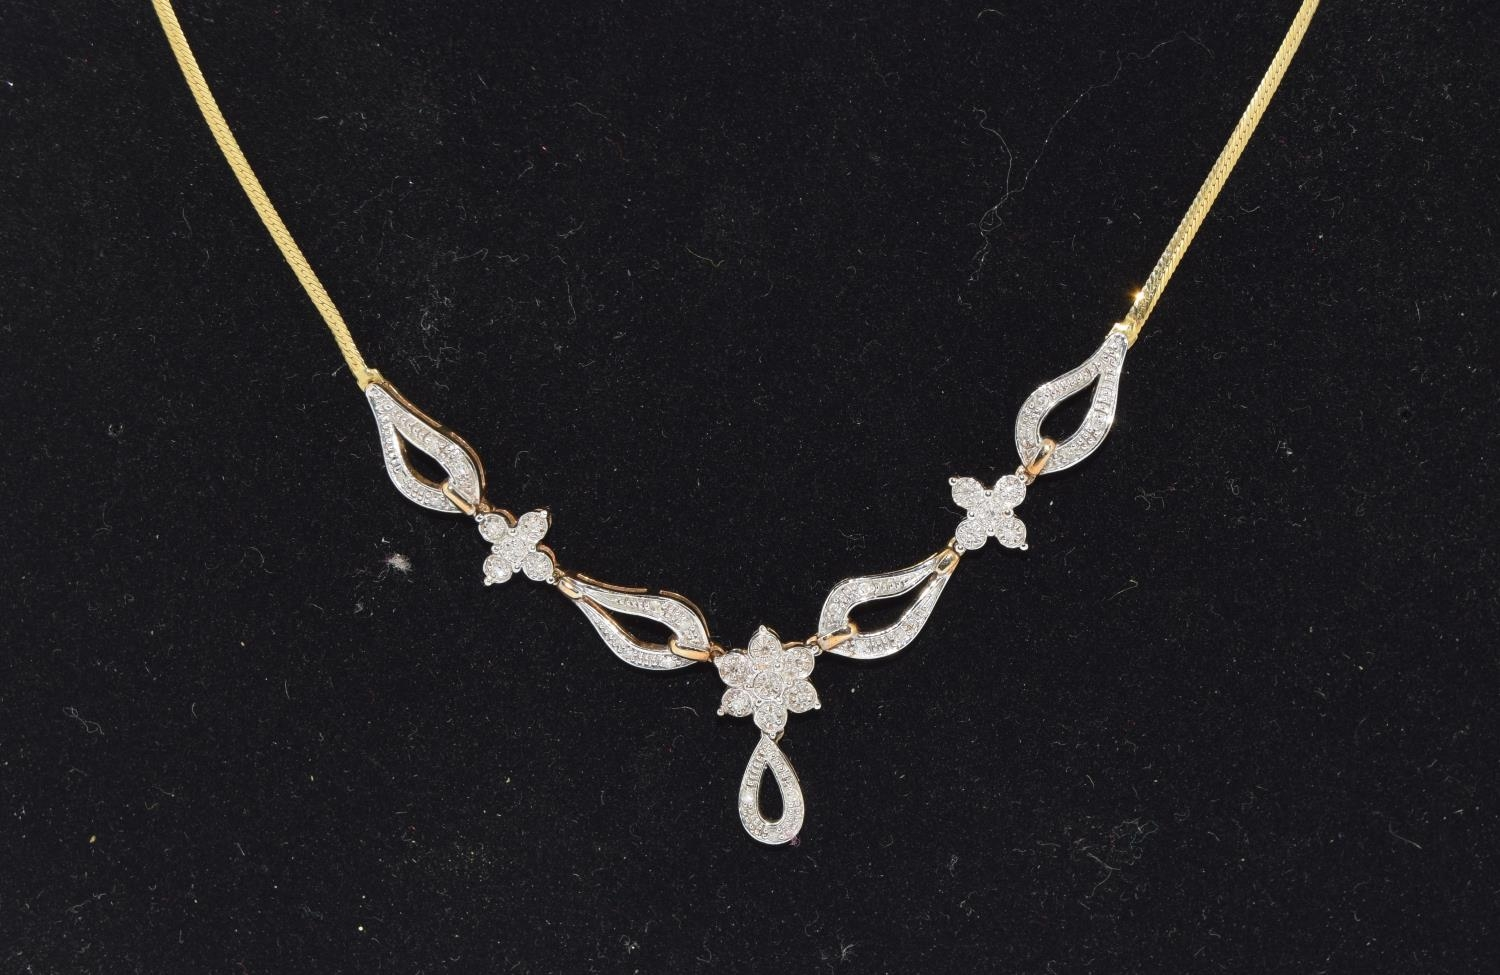 Diamond 9ct gold necklace, boxed